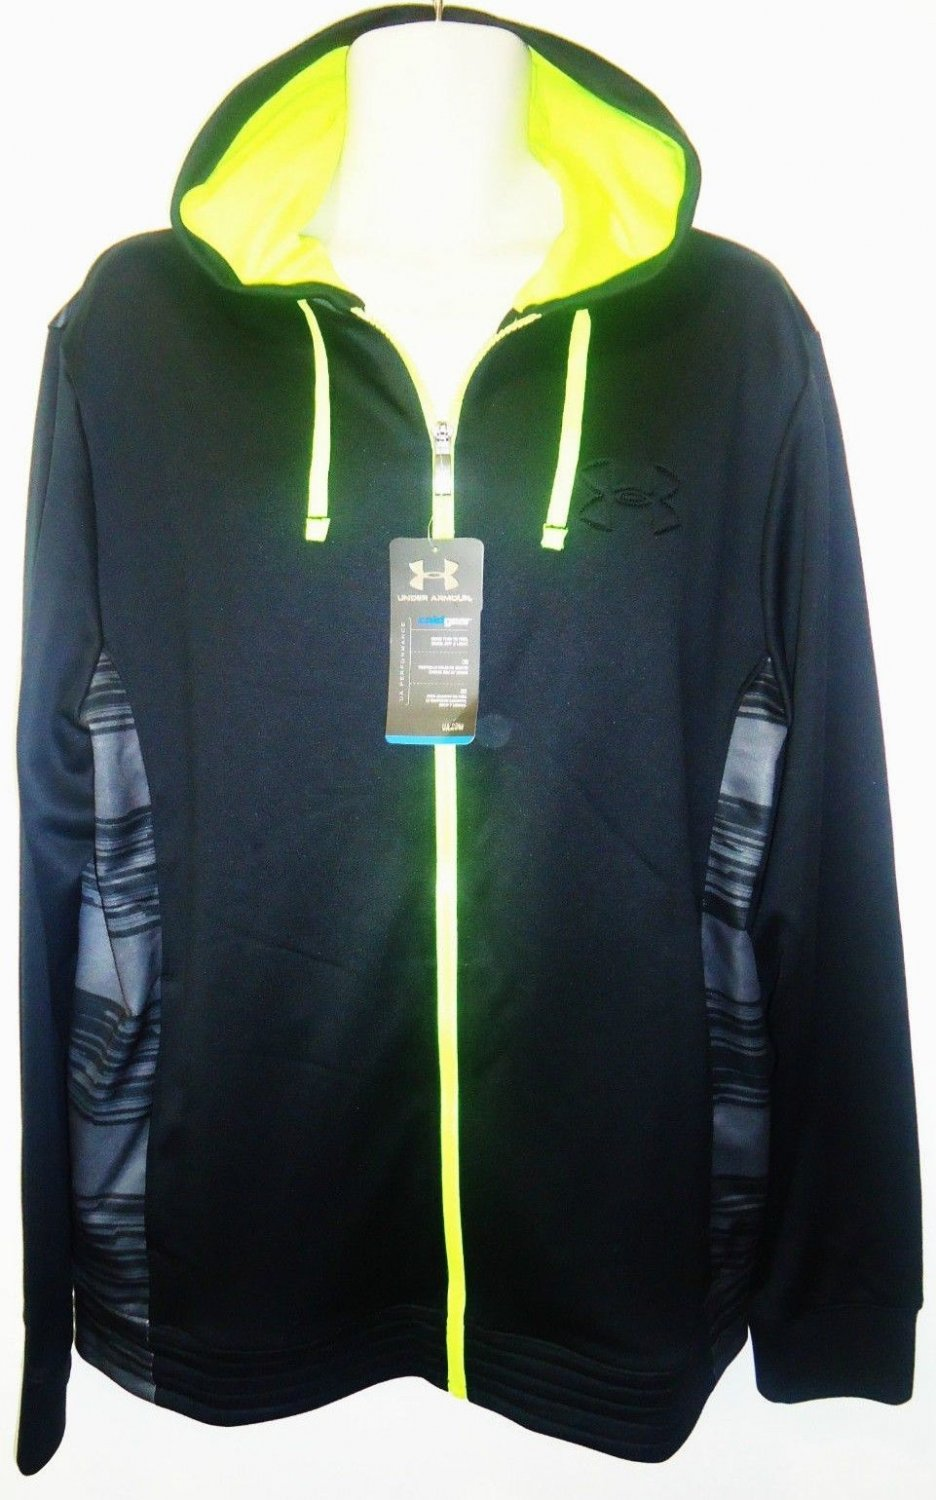 UNDER ARMOUR - COLD GEAR - HOODIE - BLACK - LIME - LARGE - TRACK - JACKET - NEW